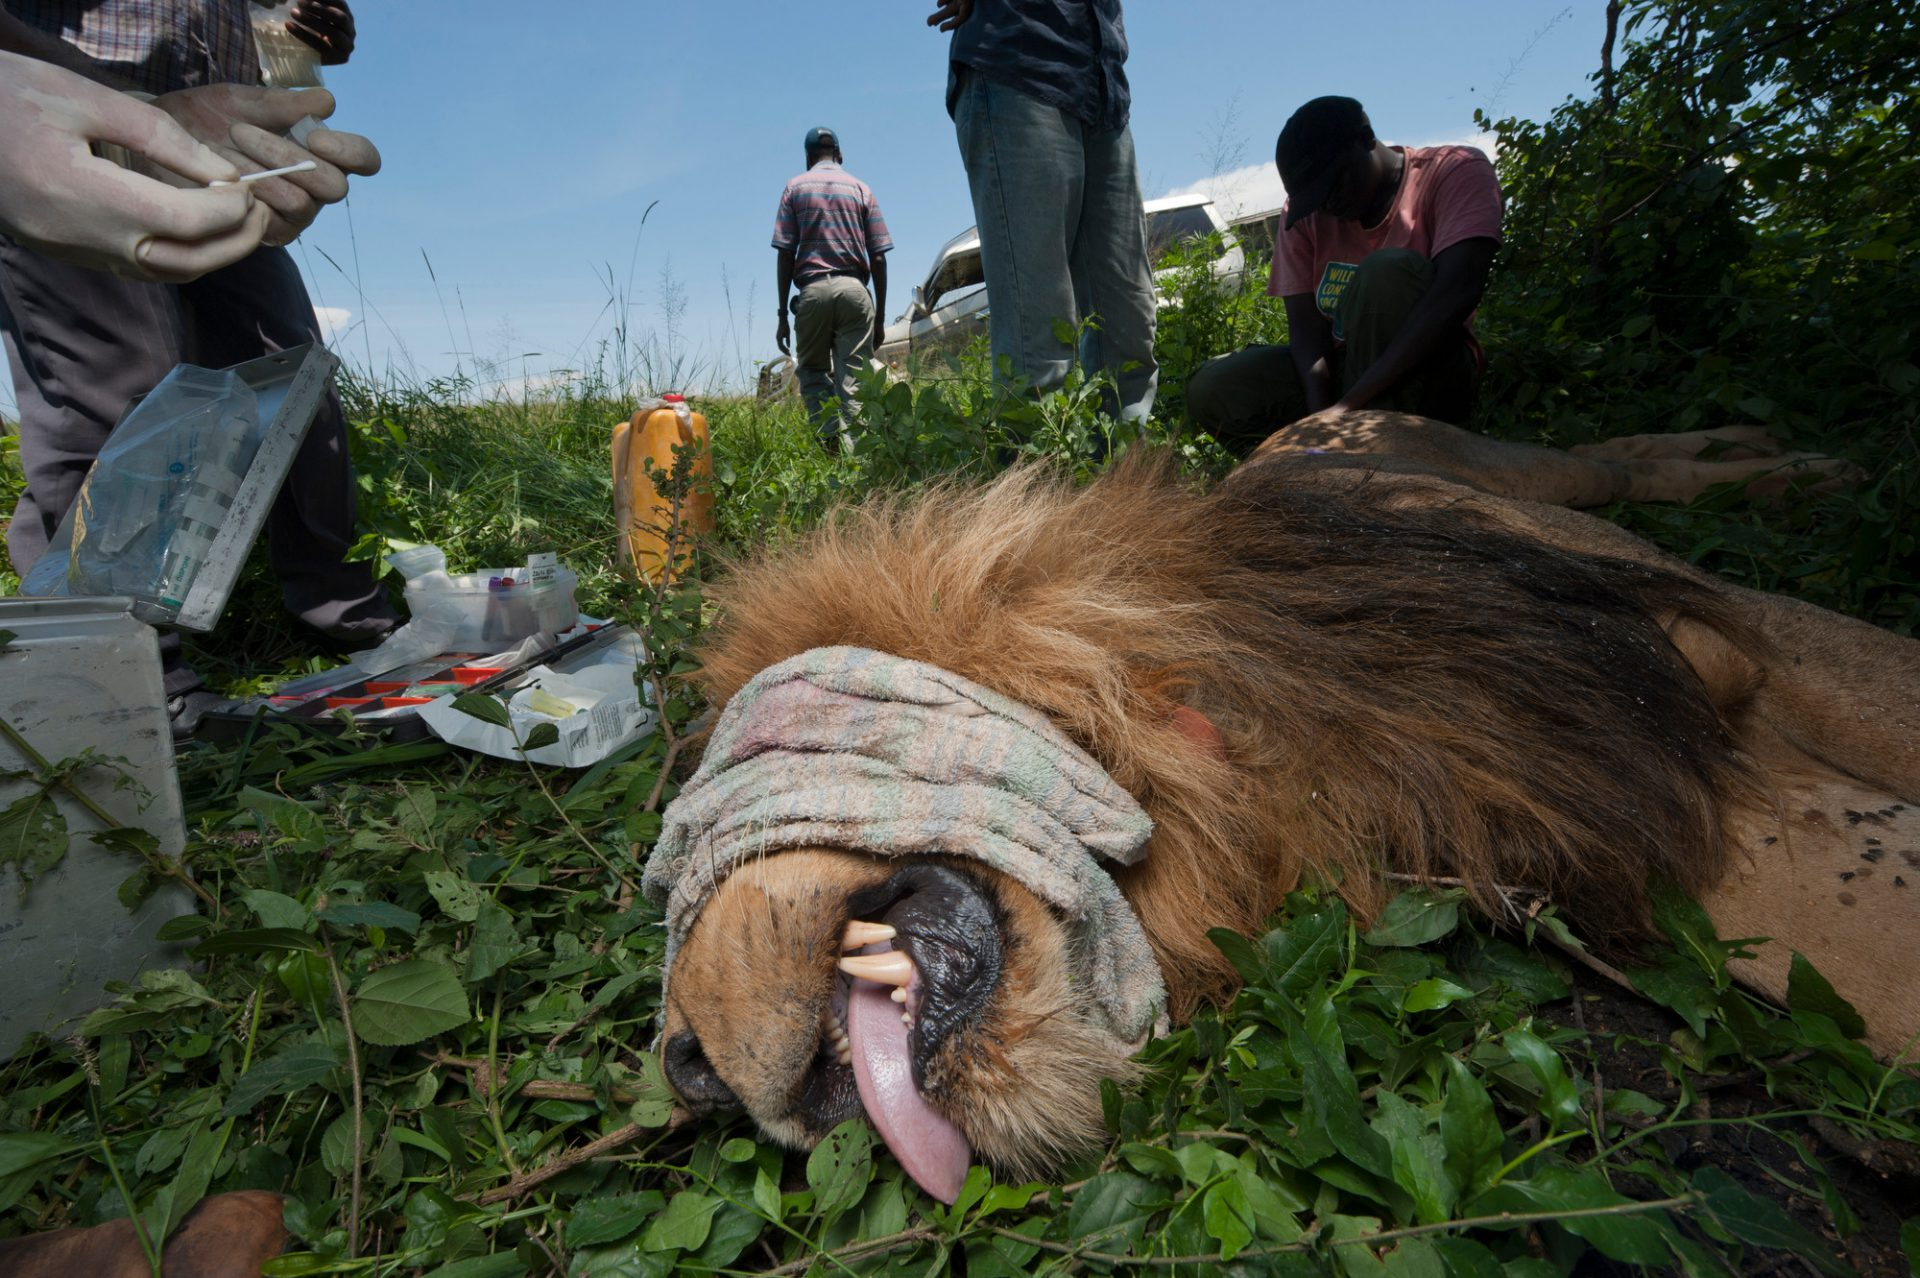 Photo: A crew tranquilizes and radio collars a lion for monitoring.